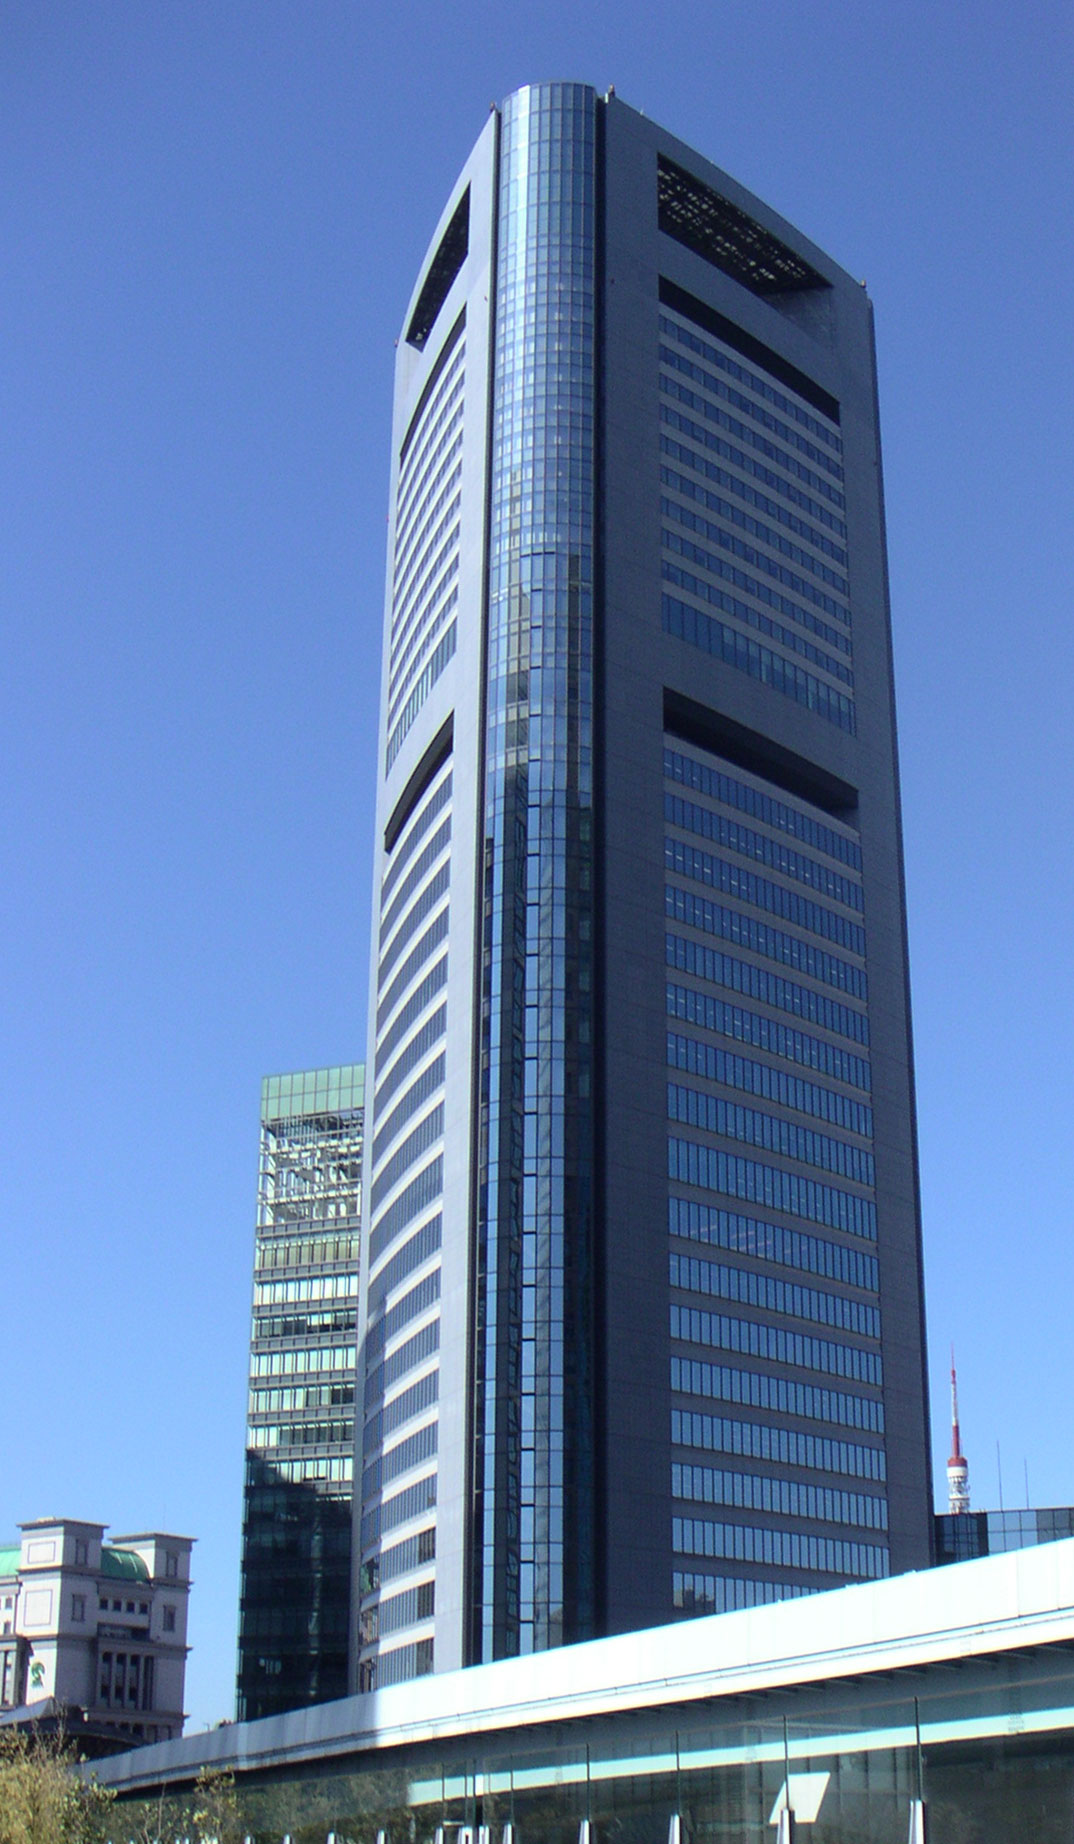 Shiodome Media Tower on 1074 html